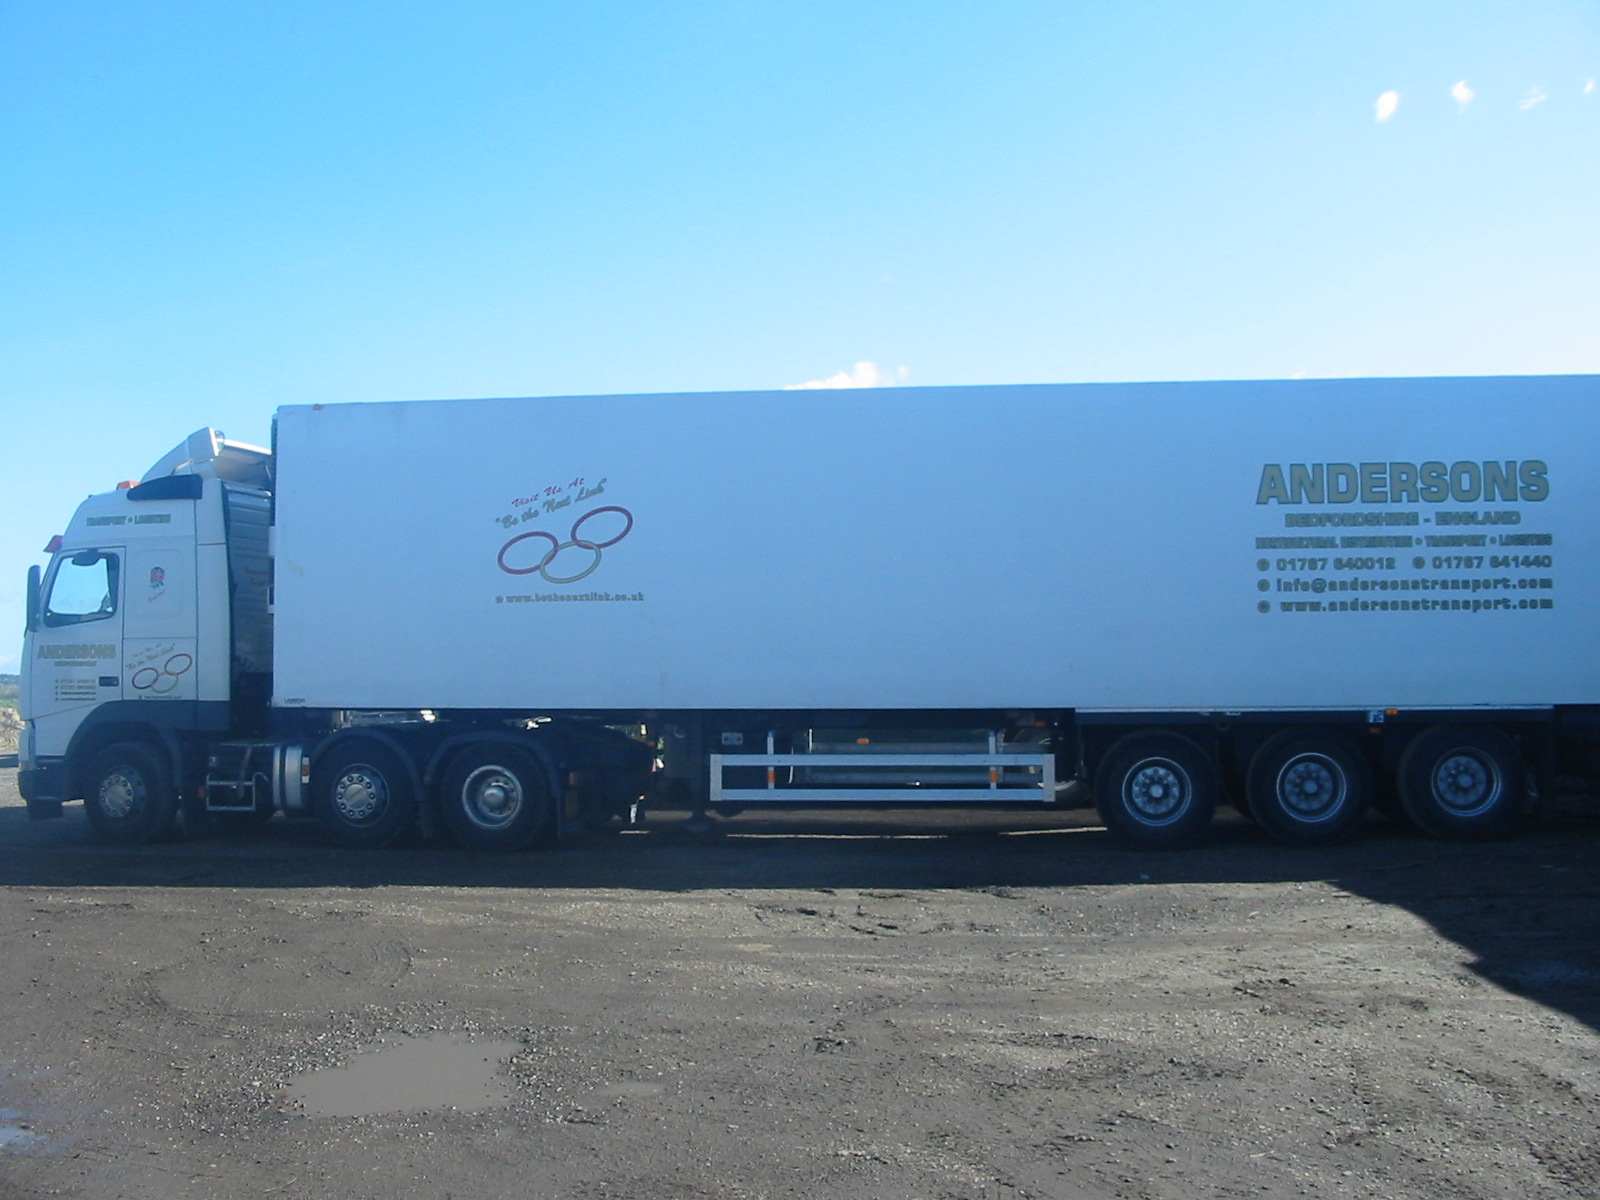 Andersons Box Trailer